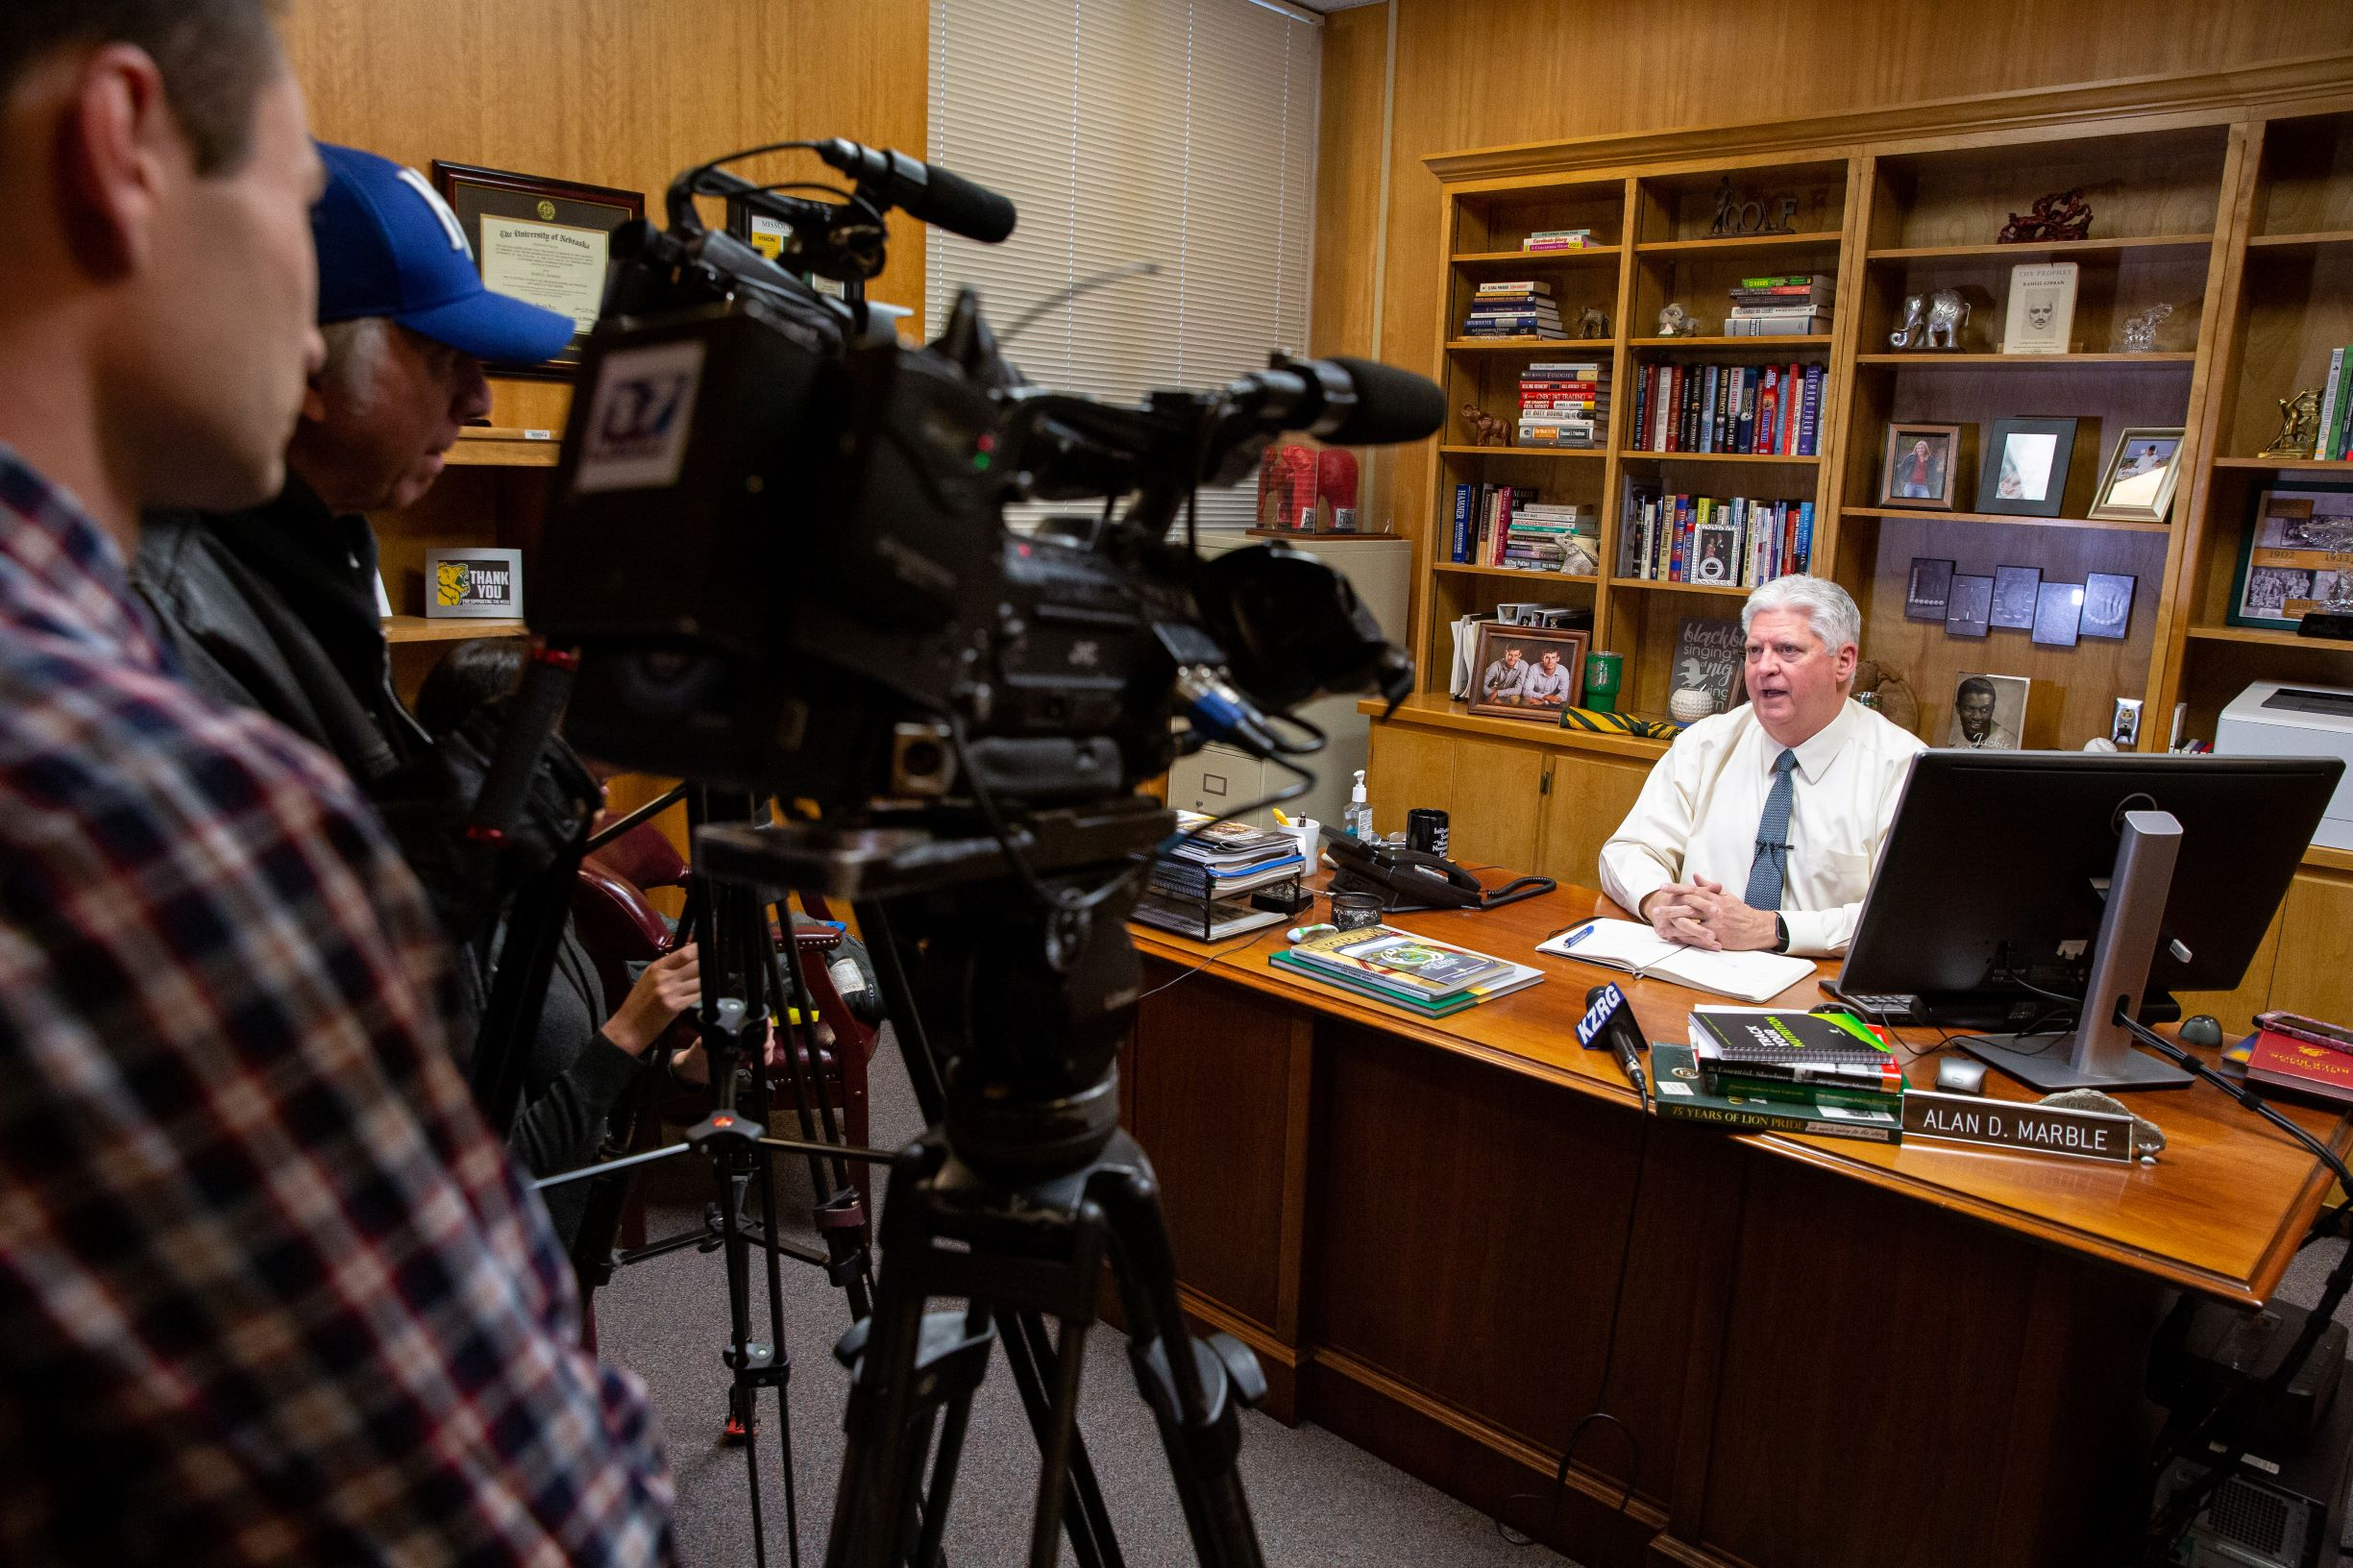 Dr. Alan Marble's March 13, 2020 Press Conference